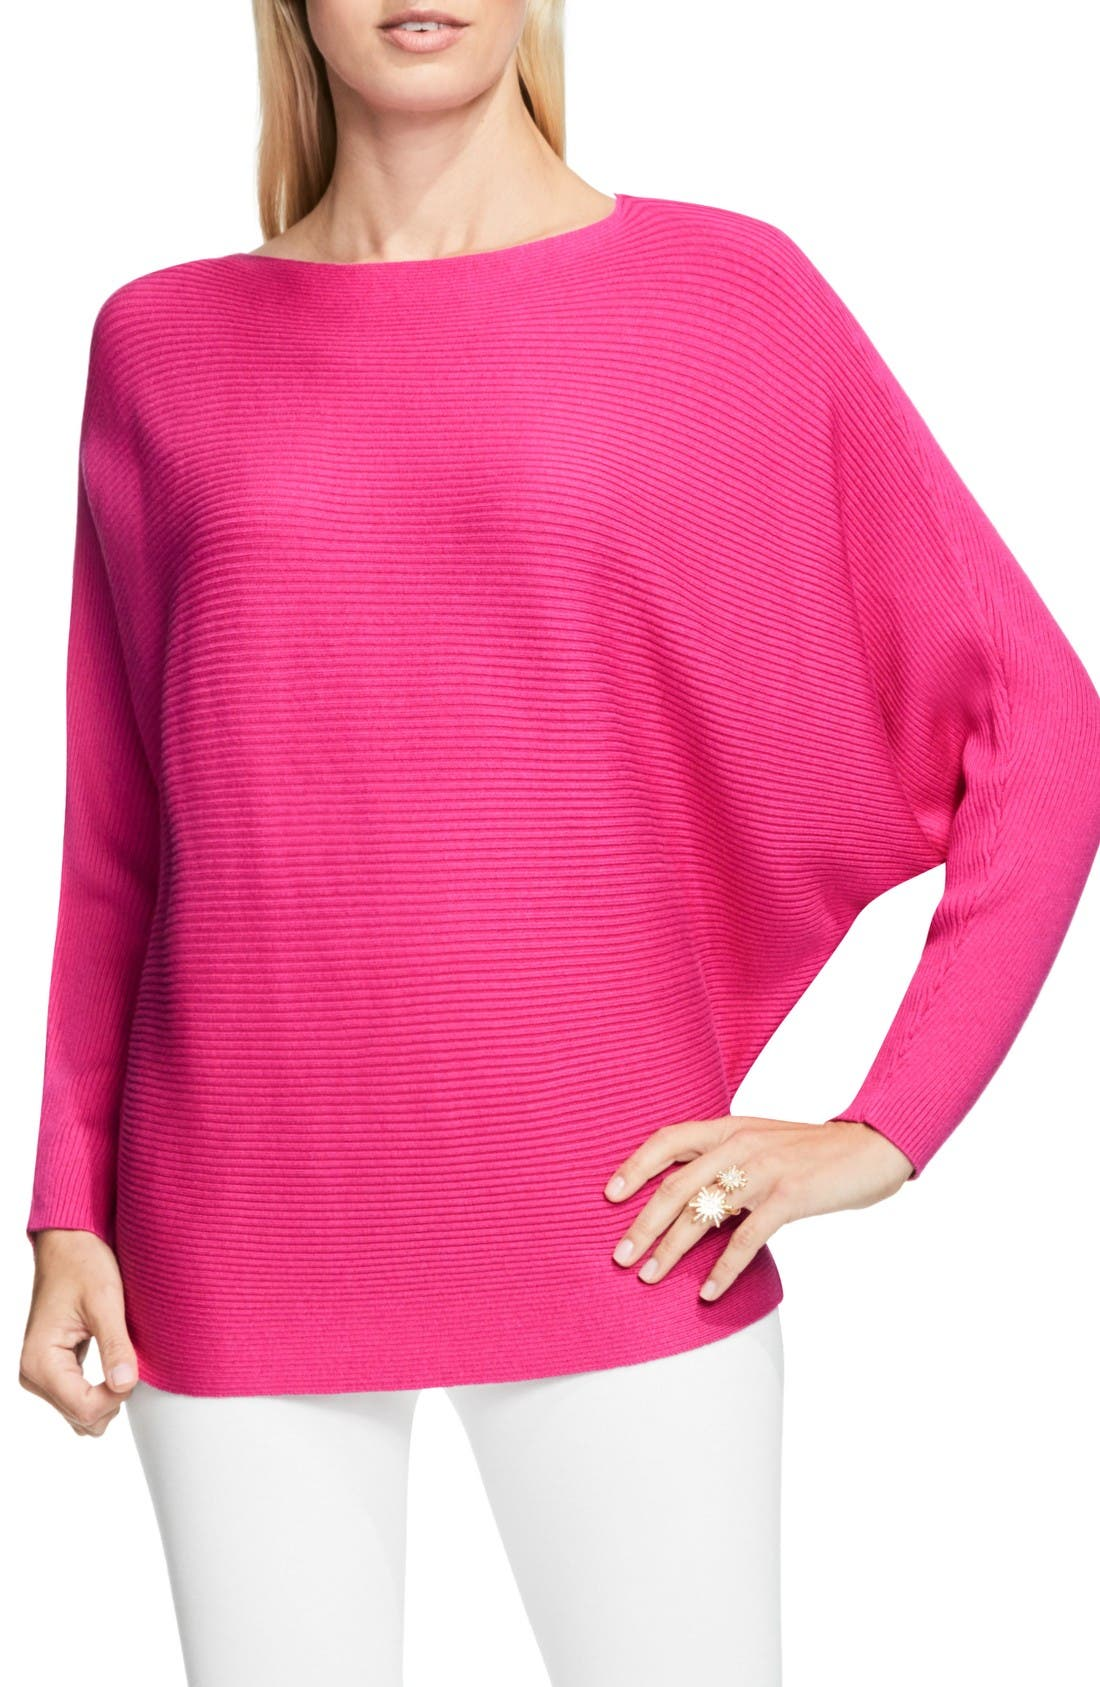 Alternate Image 1 Selected - Vince Camuto Rib Knit Dolman Sweater